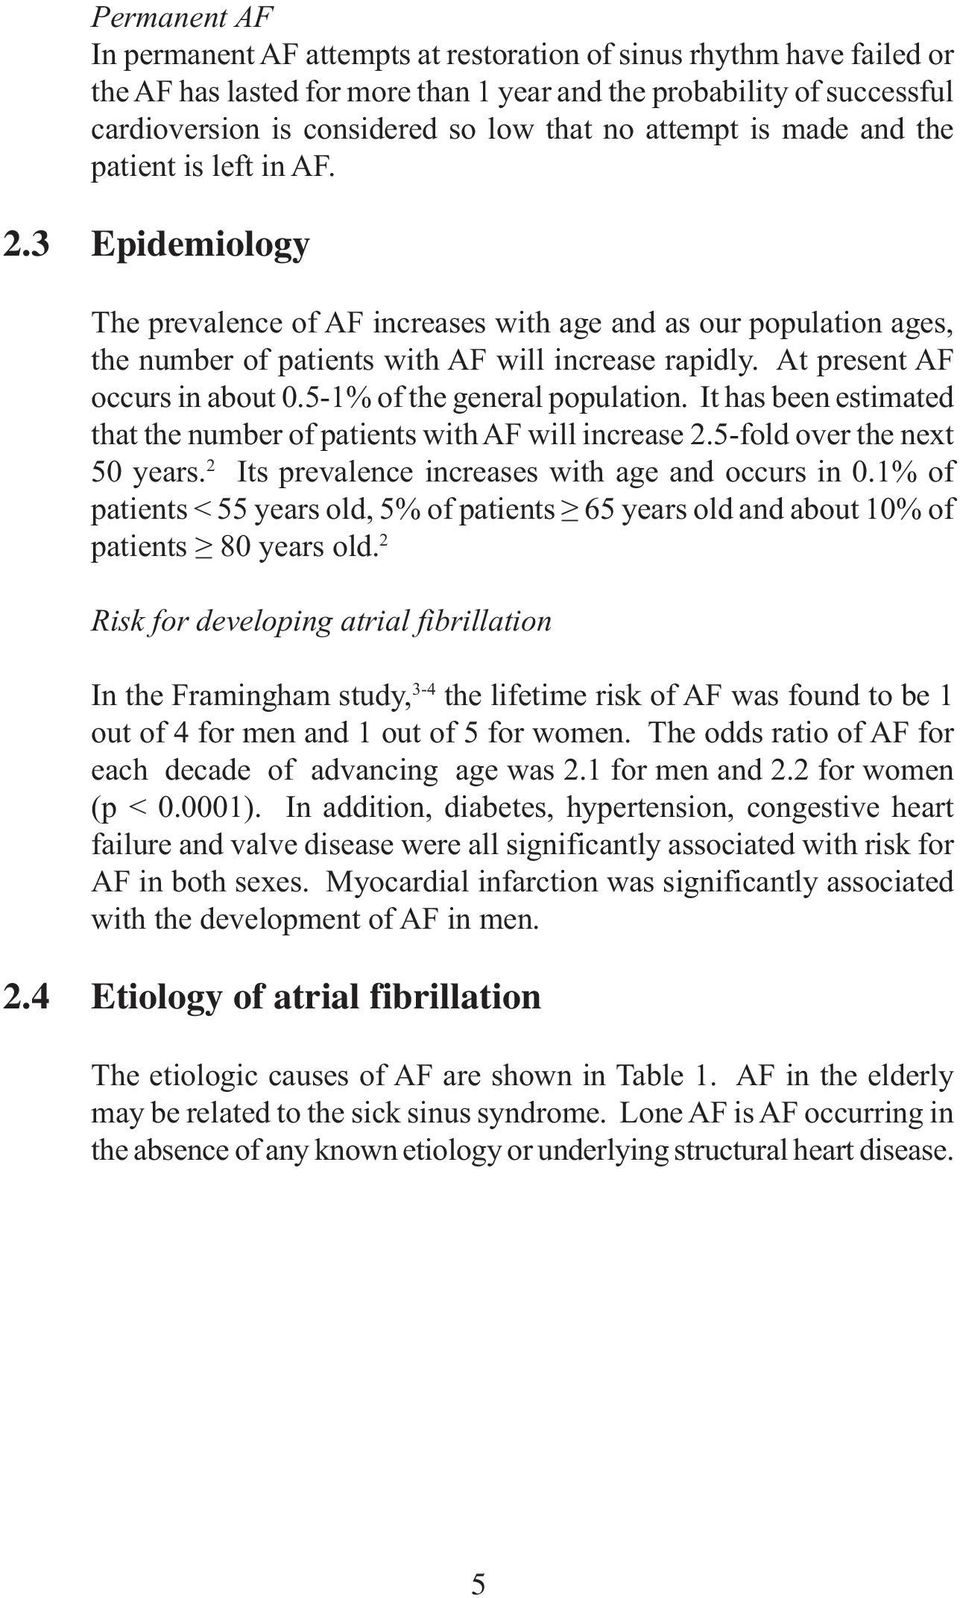 At present AF occurs in about 0.5-1% of the general population. It has been estimated that the number of patients with AF will increase 2.5-fold over the next 50 years.